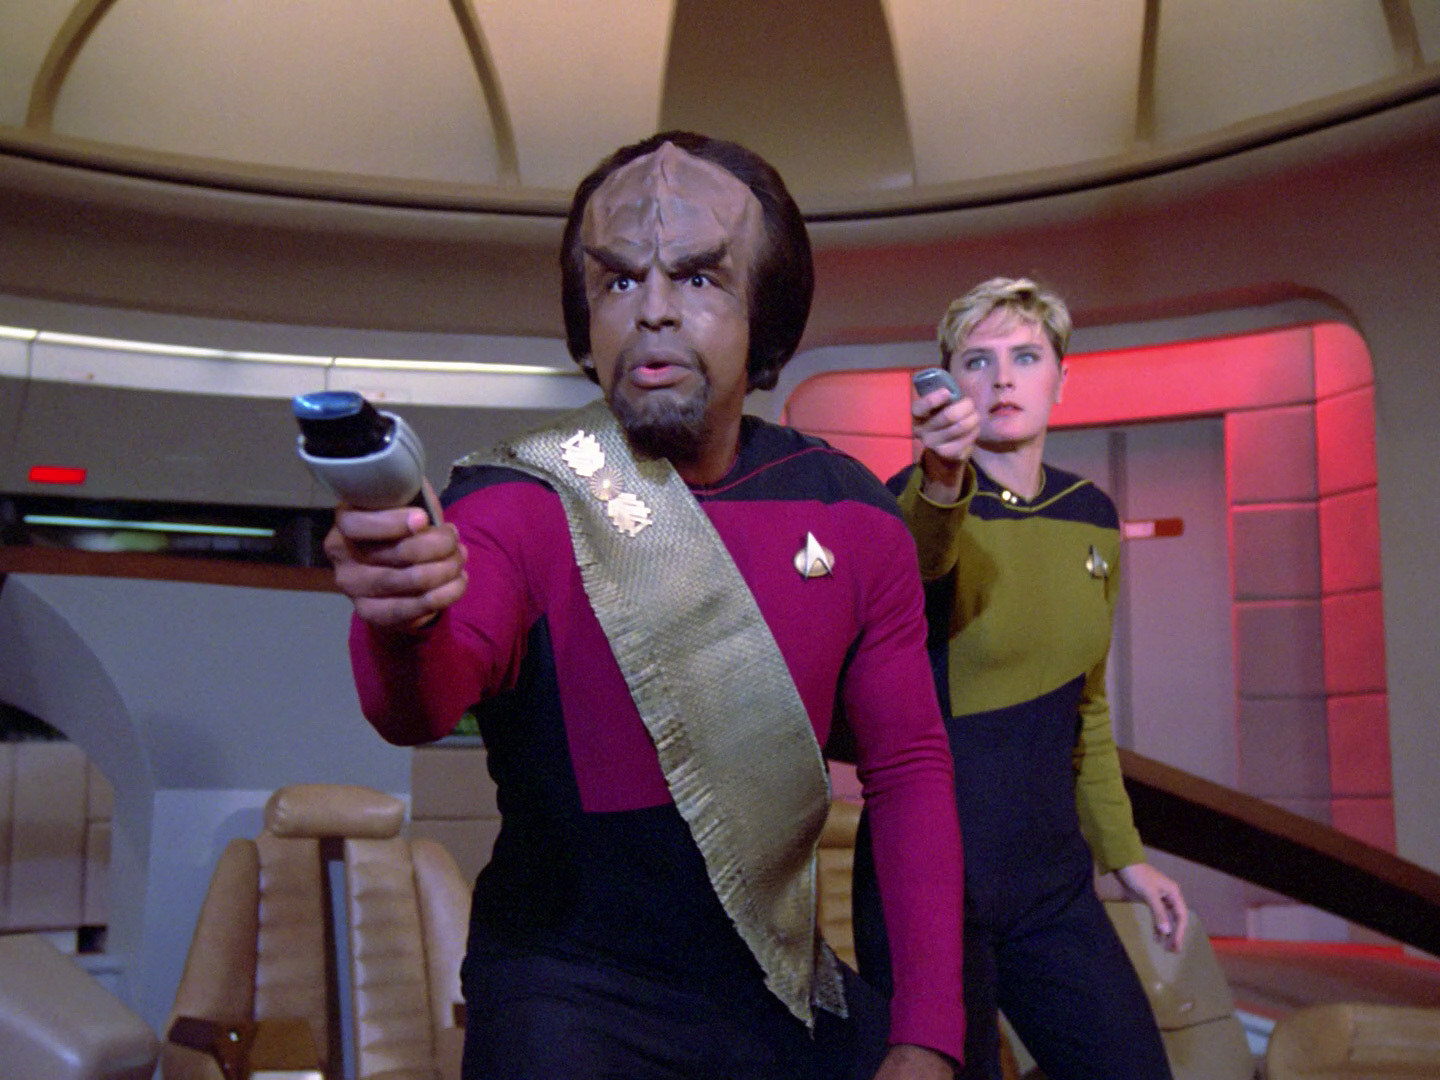 Worf got game in the 24th Century